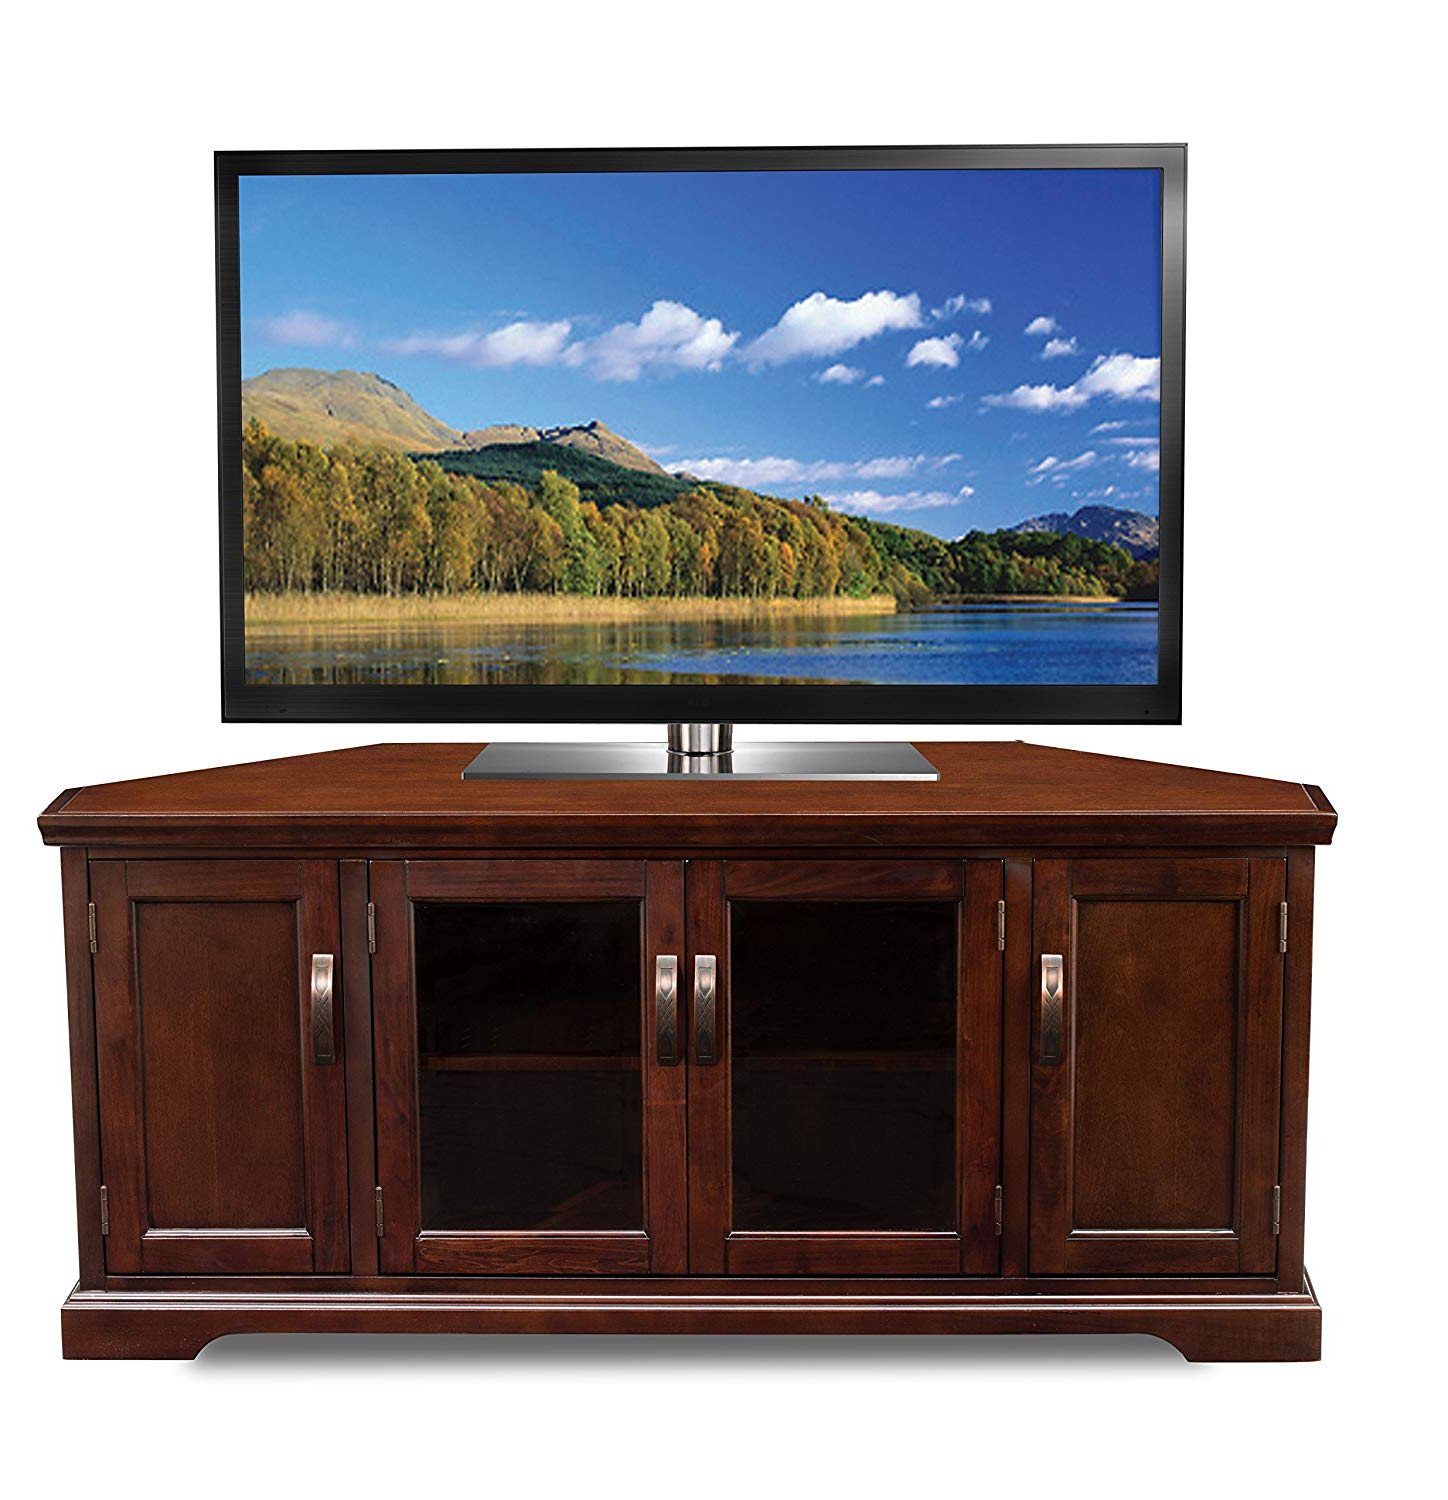 "Well Known Cherry Wood Tv Stands With Regard To Leick 81386 Chocolate Cherry Corner Tv Stand, 60"": Amazon (View 4 of 20)"